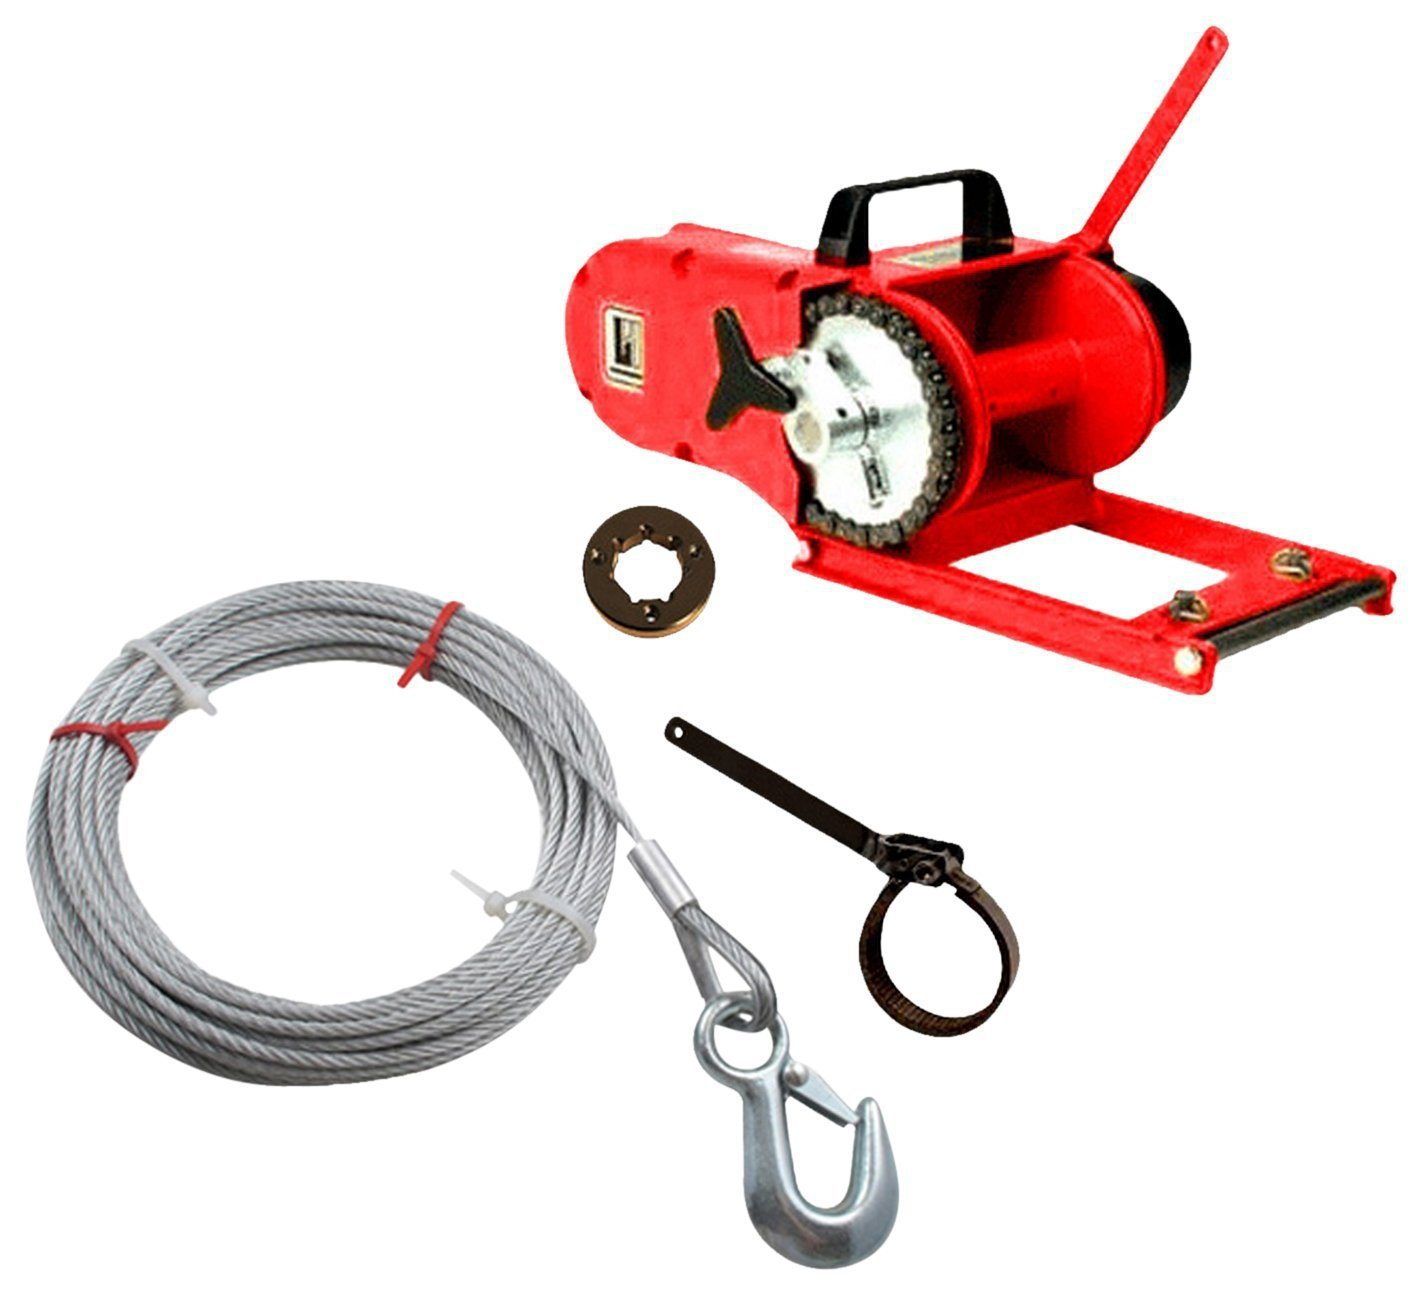 Powerhouse by Lewis Chainsaw Winch 8,000lbs capacity Full Package